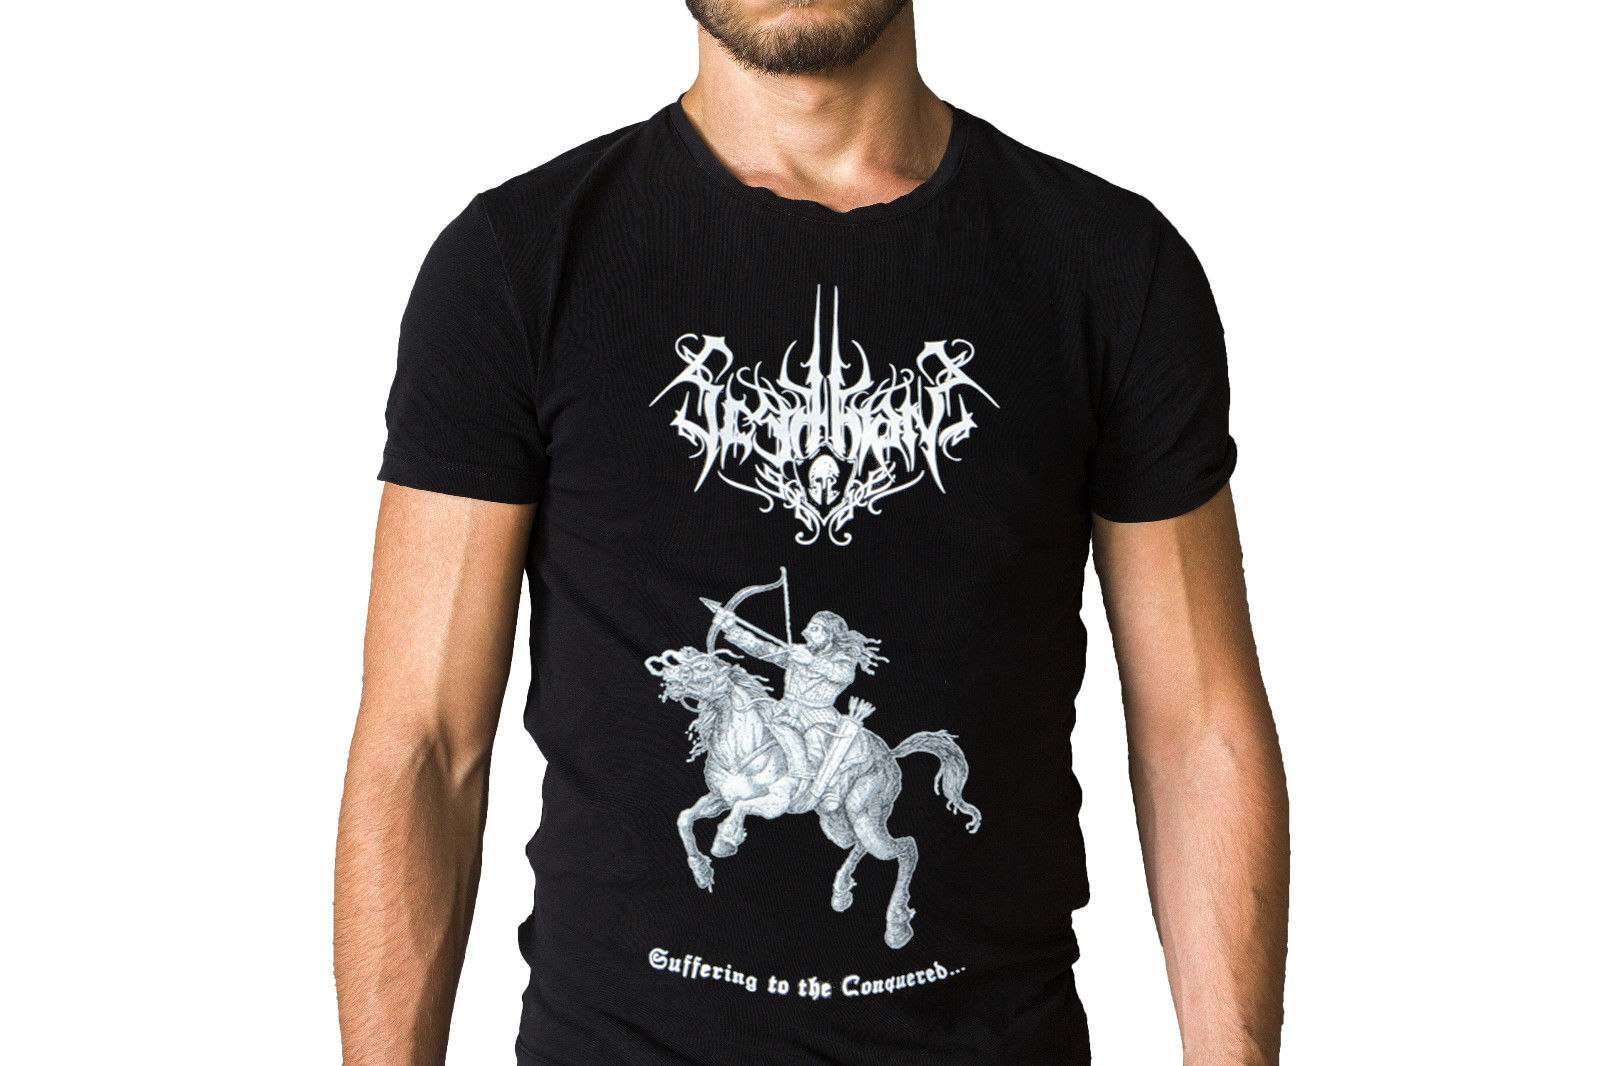 Scythian Suffering The Conquered Logo Song Inspired Black T-Shirt Men Cotton T-Shirt Printed T Shirt Top Tee Summer Style